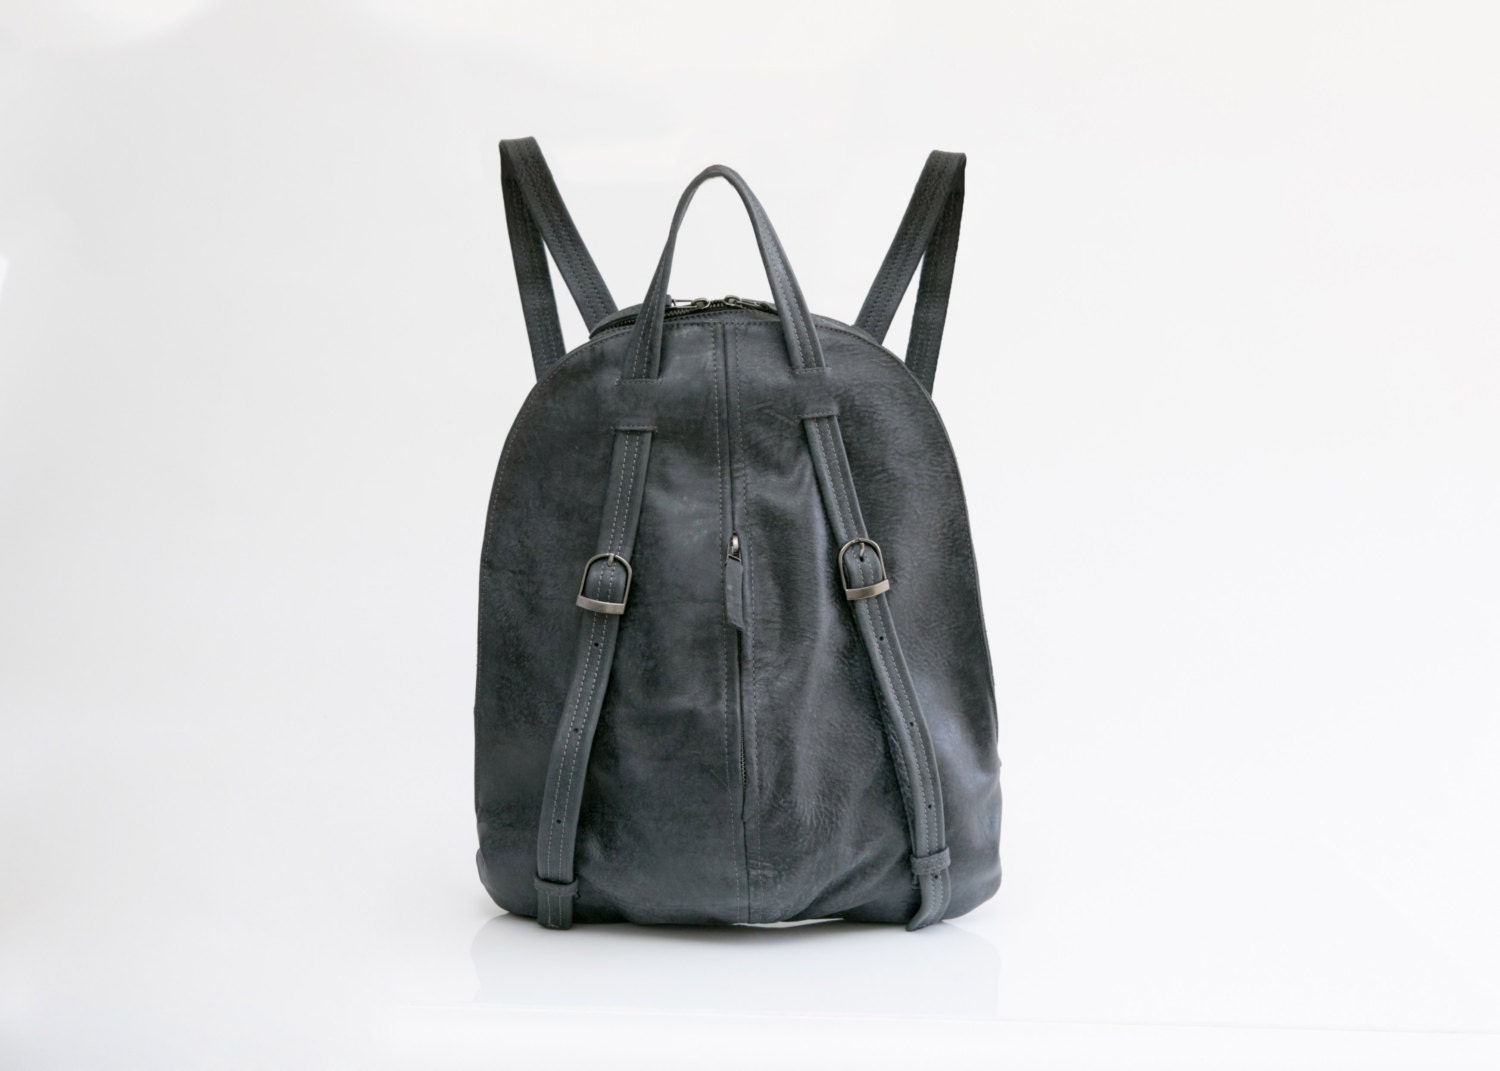 084f63cc0c Charcoal Gray leather Backpack Women Backpack Purse